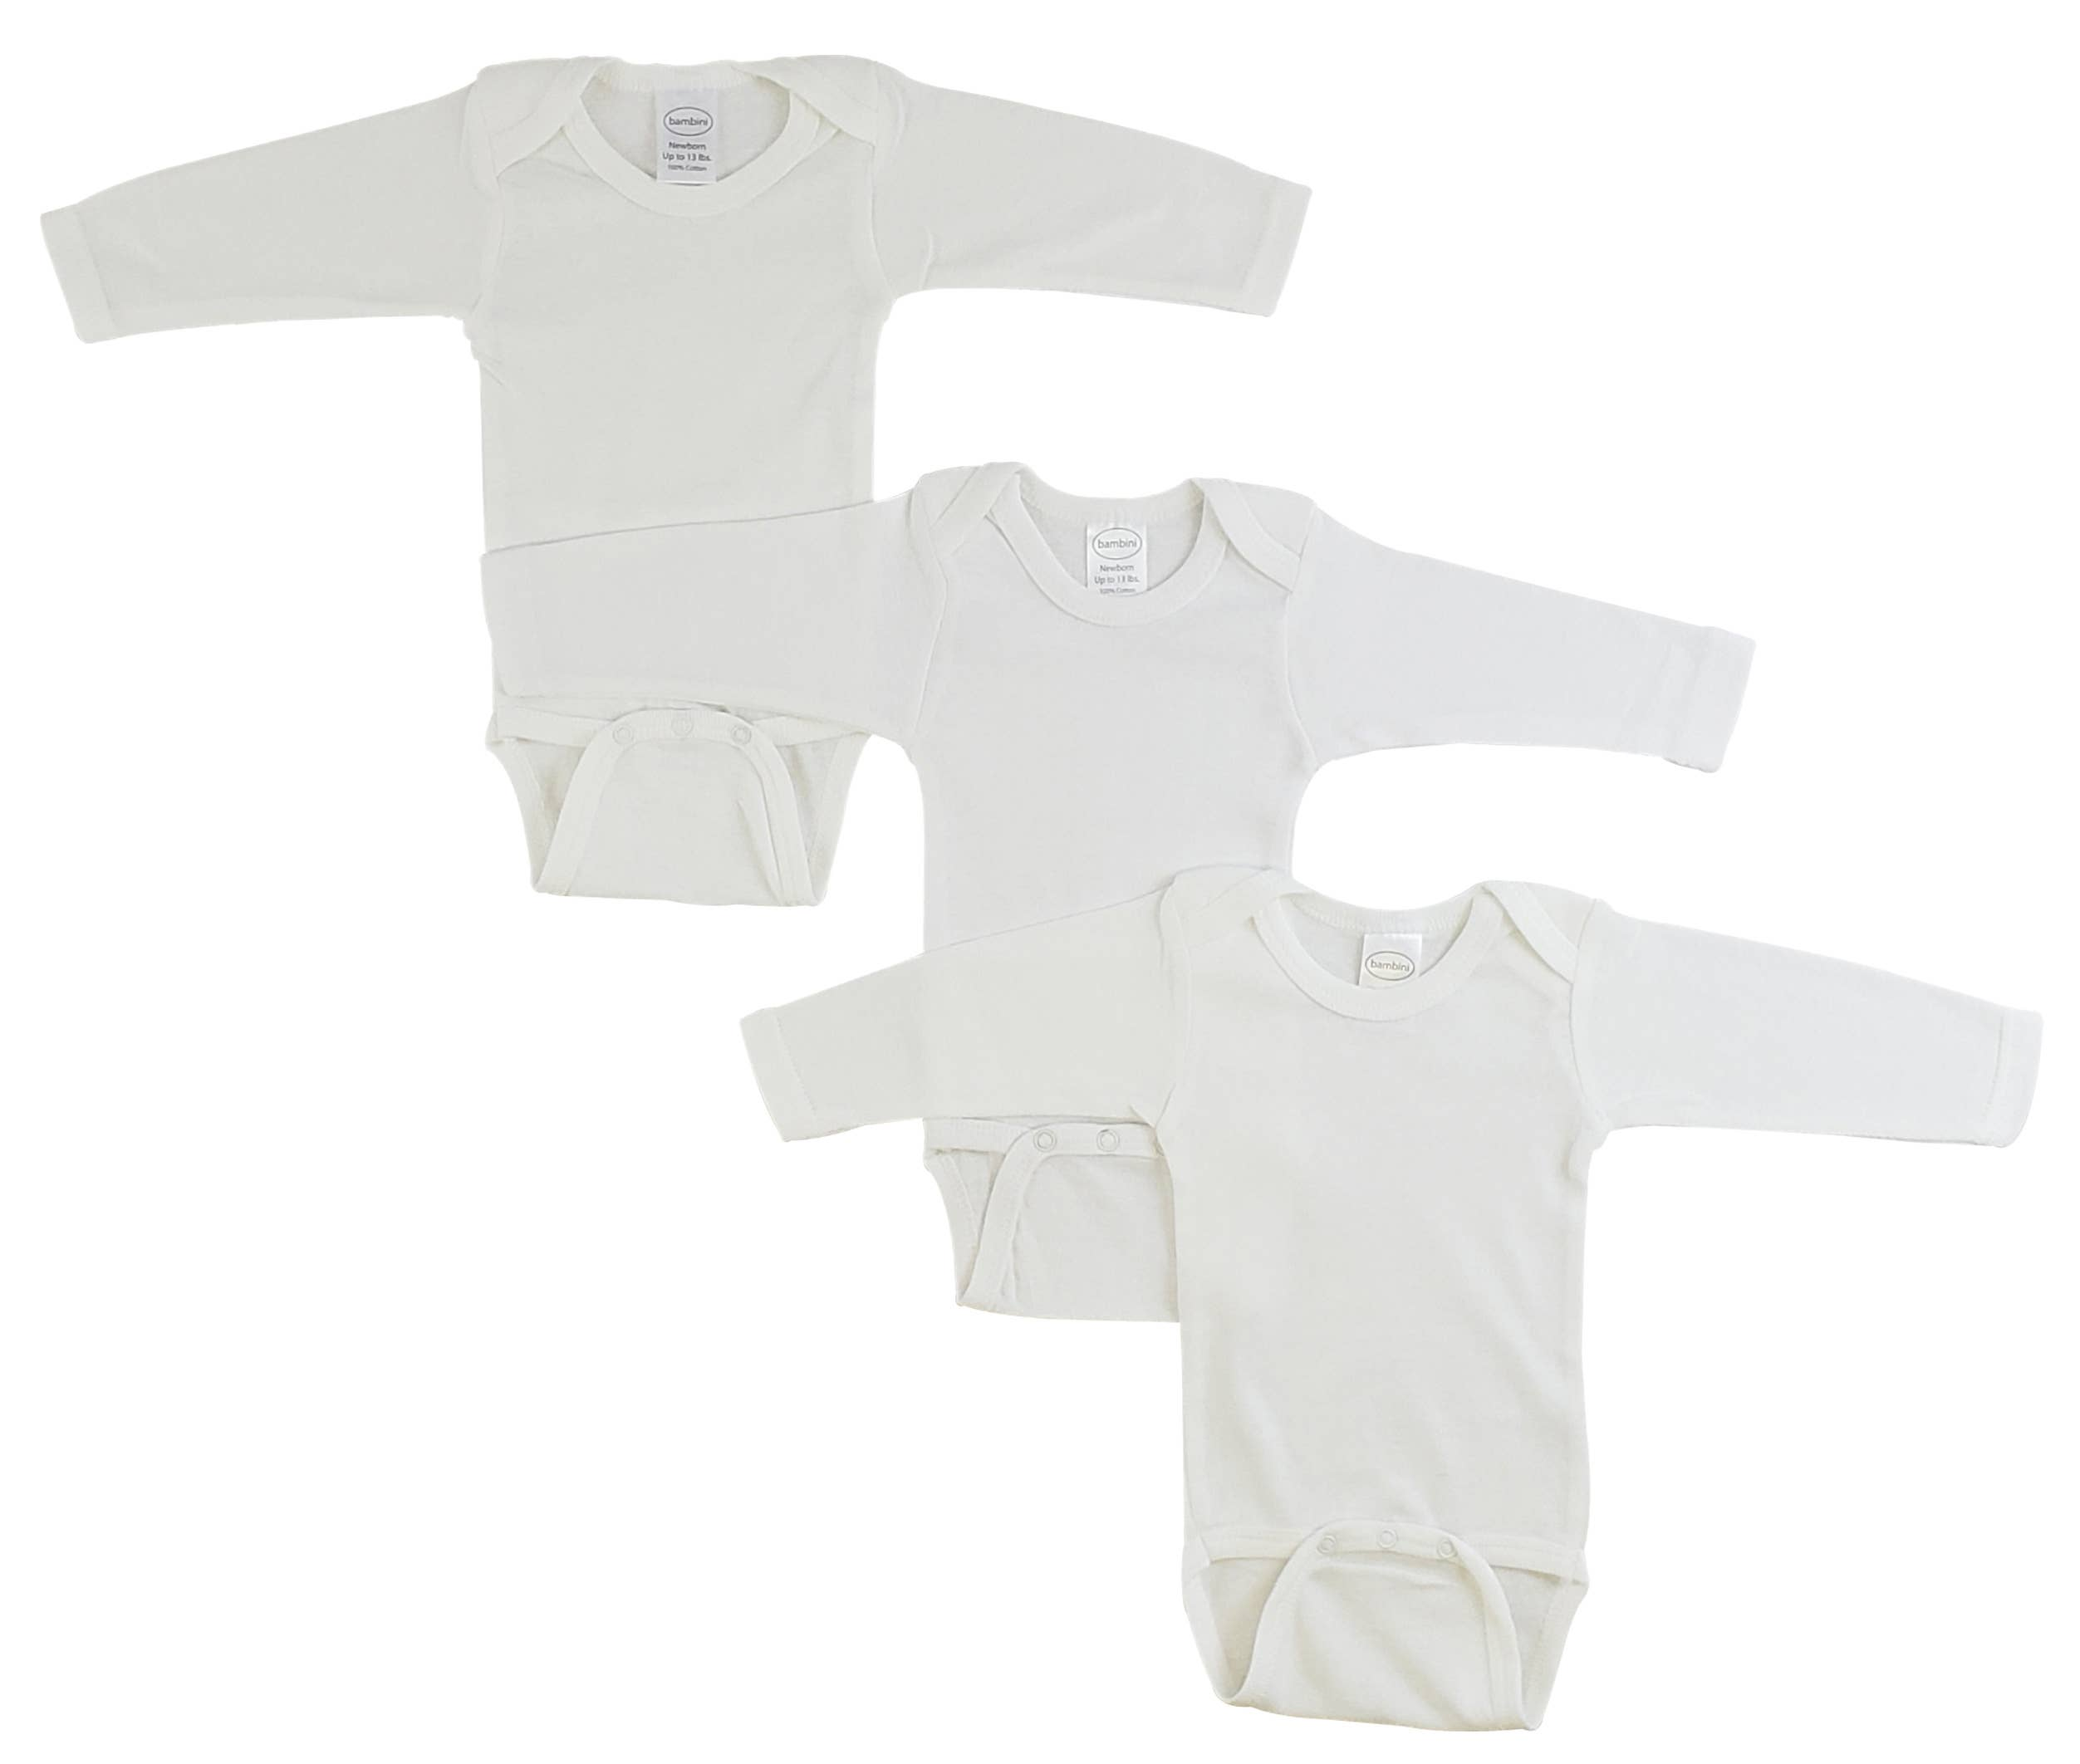 Bambini Infant Clothes Printed Boys Short Sleeve Variety 3 Pack 100/% Cotton Cute